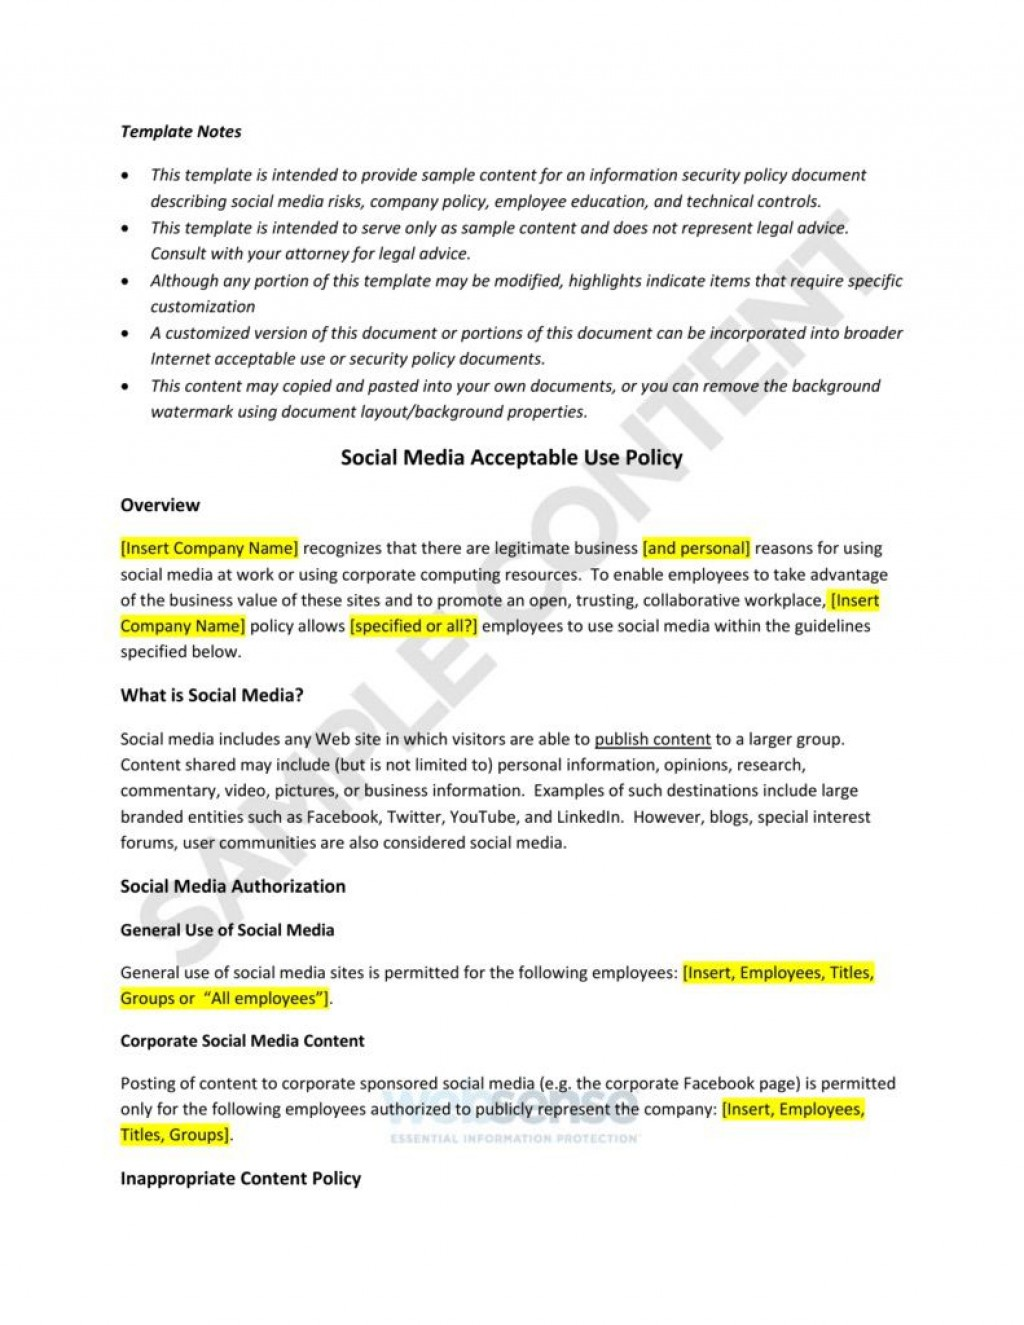 003 Amazing Social Media Policie Template High Definition  Simple Policy Australia Example For Small BusinesLarge